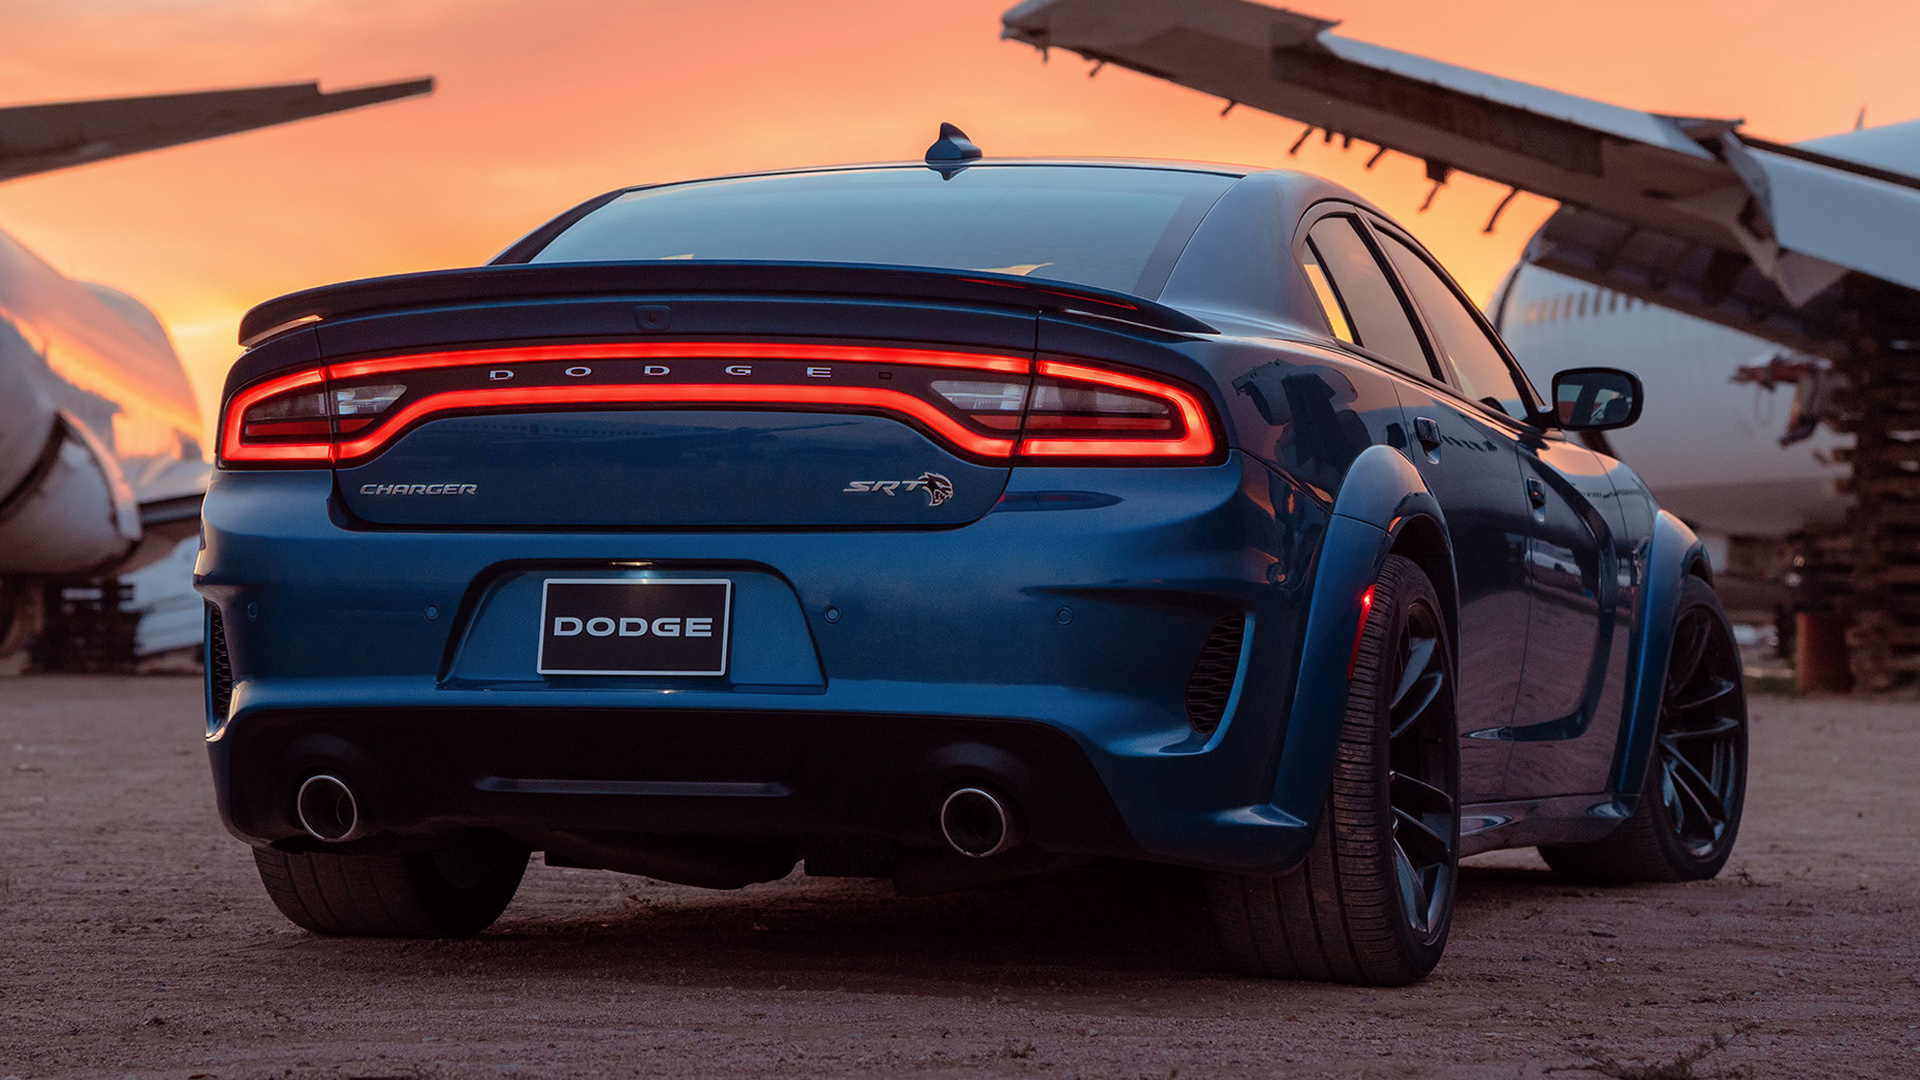 2020 Dodge Charger Srt Hellcat Widebody Wallpapers And Hd Images Car Pixel